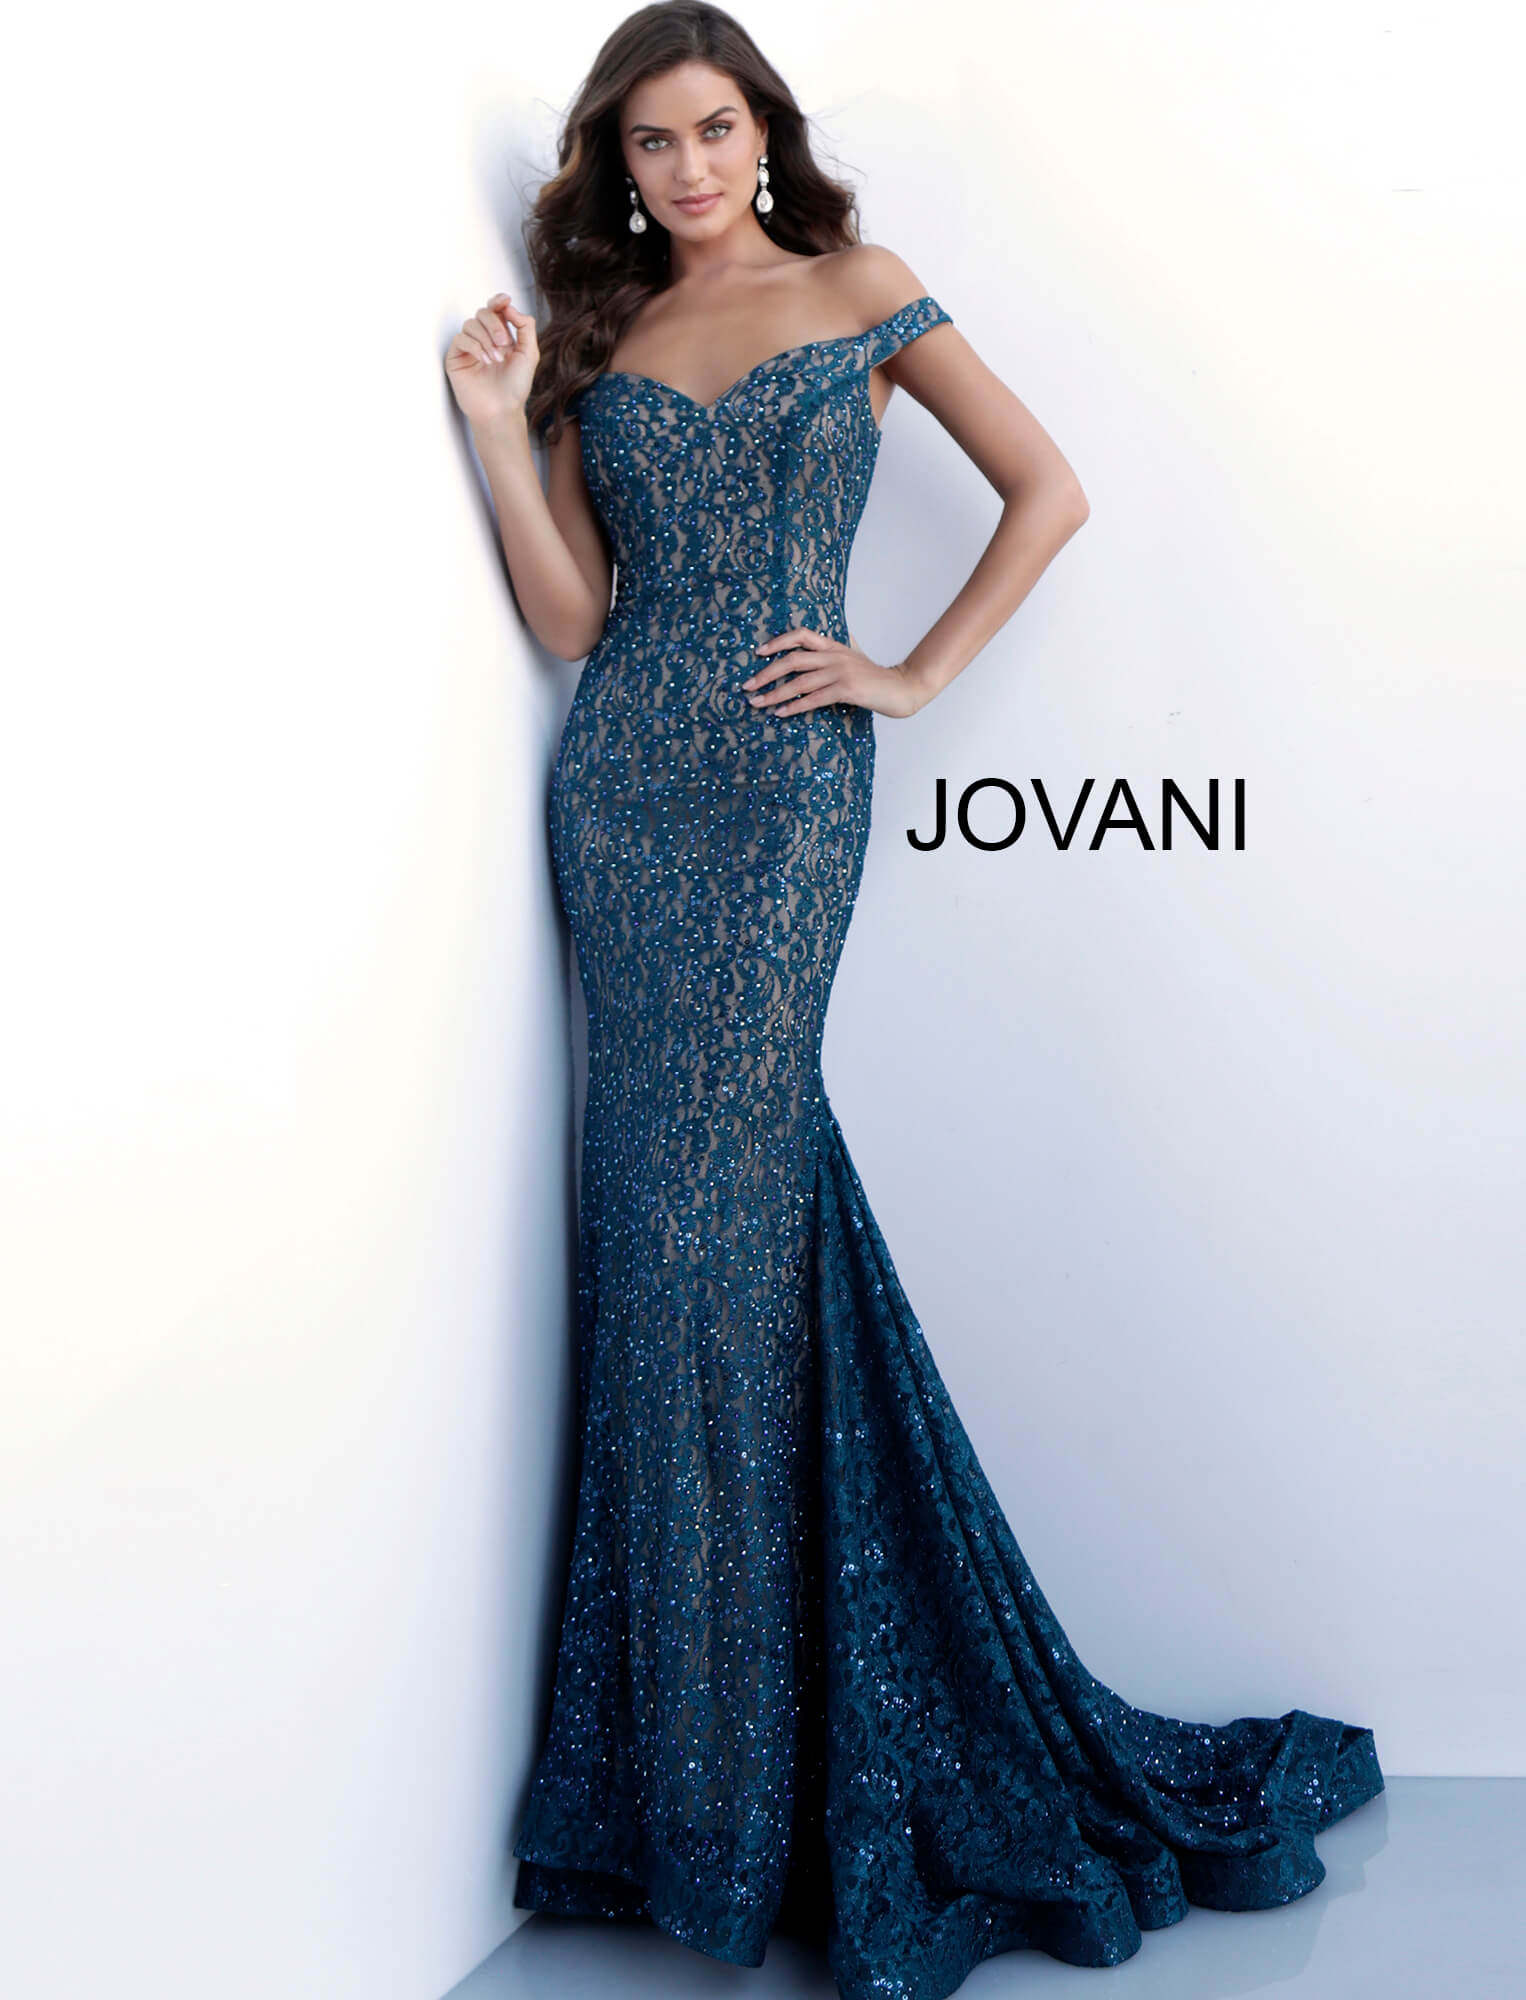 Peacock sweetheart neckline long train prom gown 64521